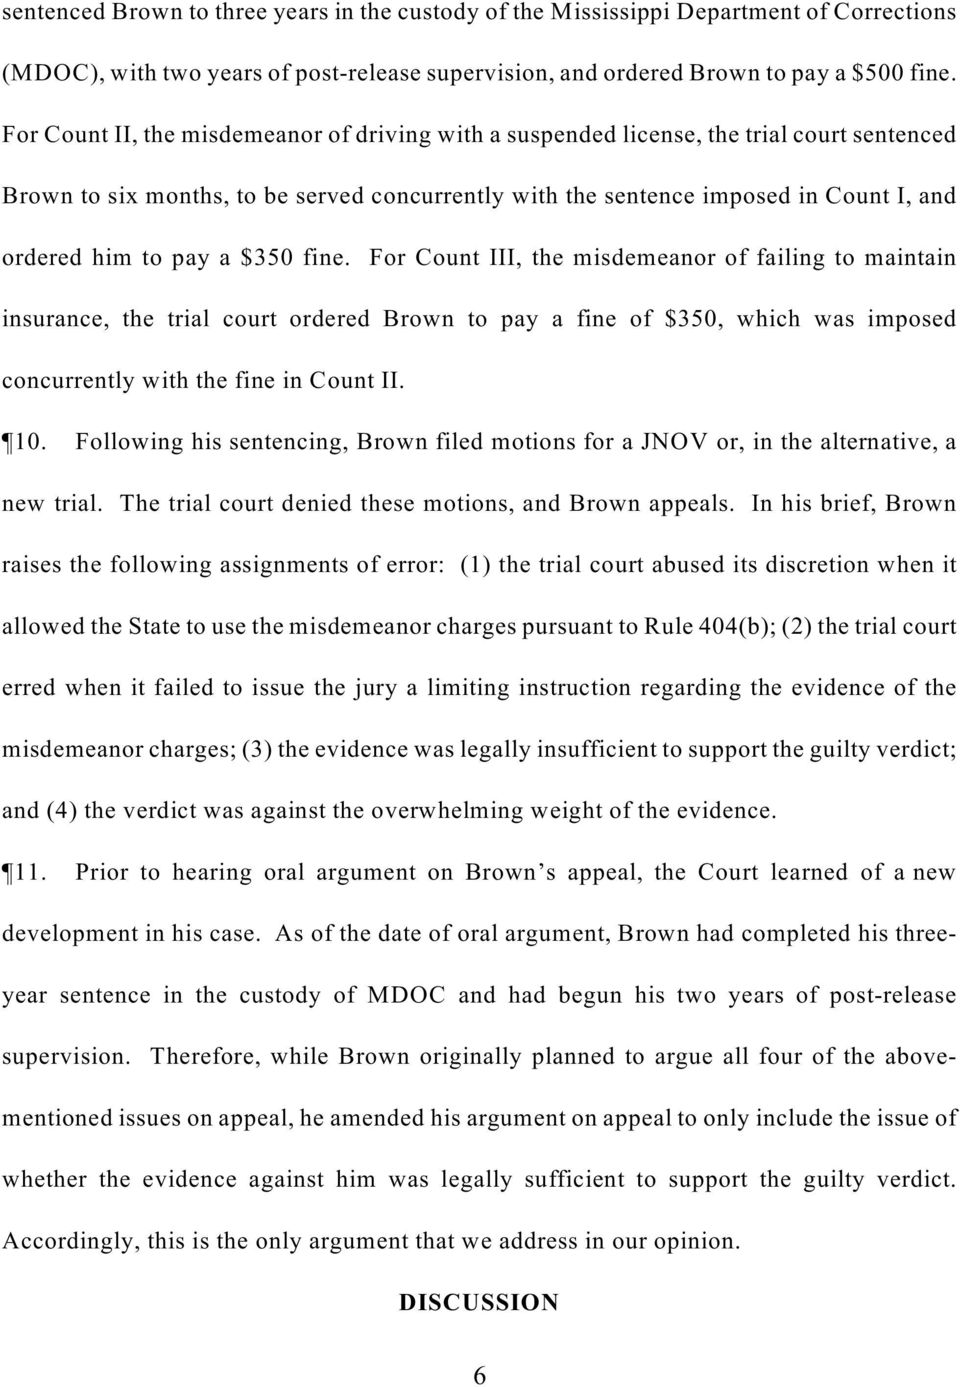 pay a $350 fine. For Count III, the misdemeanor of failing to maintain insurance, the trial court ordered Brown to pay a fine of $350, which was imposed concurrently with the fine in Count II. 10.